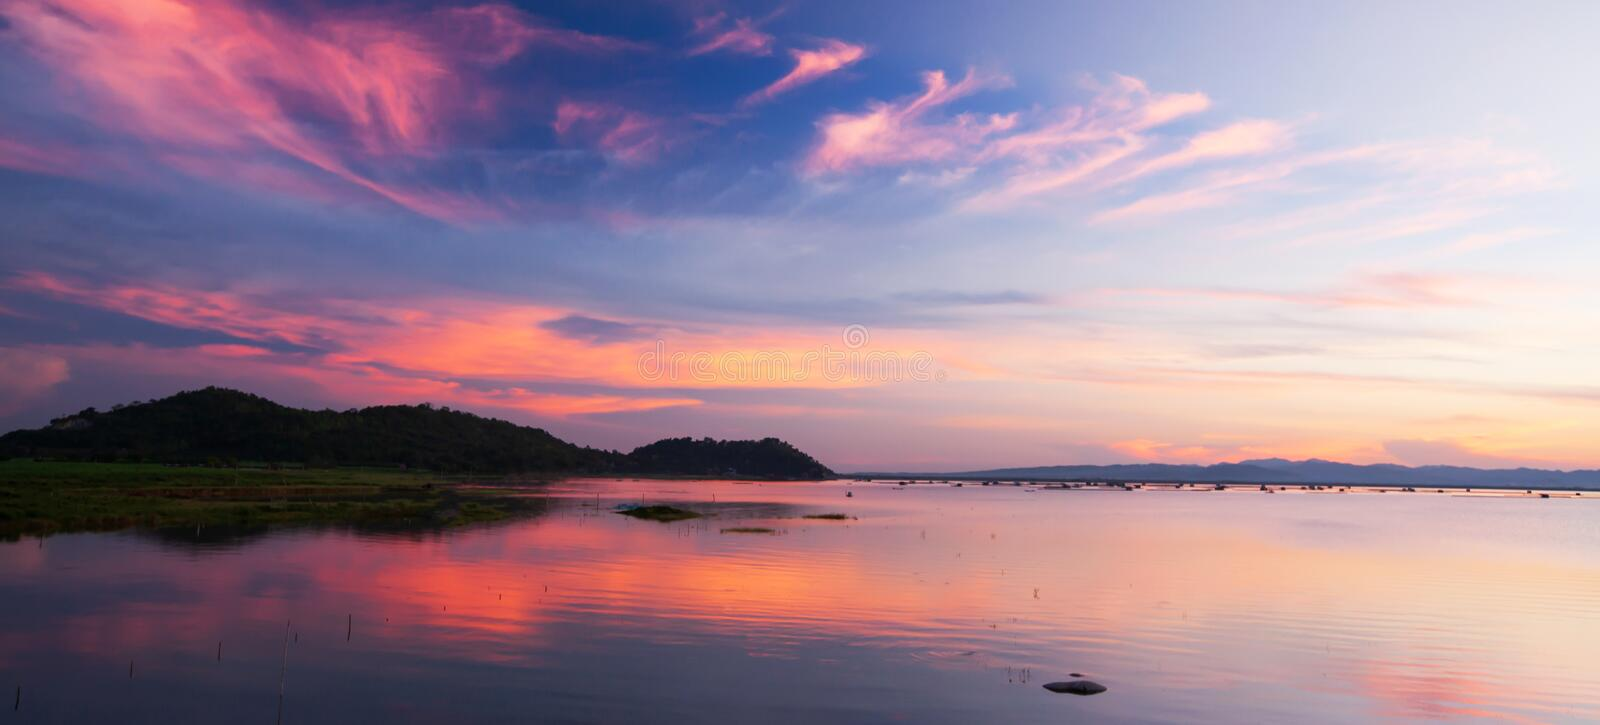 Beautiful twilight sky above a tropical lake, gently light pink clouds against the blue sky at dusk. Soft reflection of clouds and mountains on surface of stock image